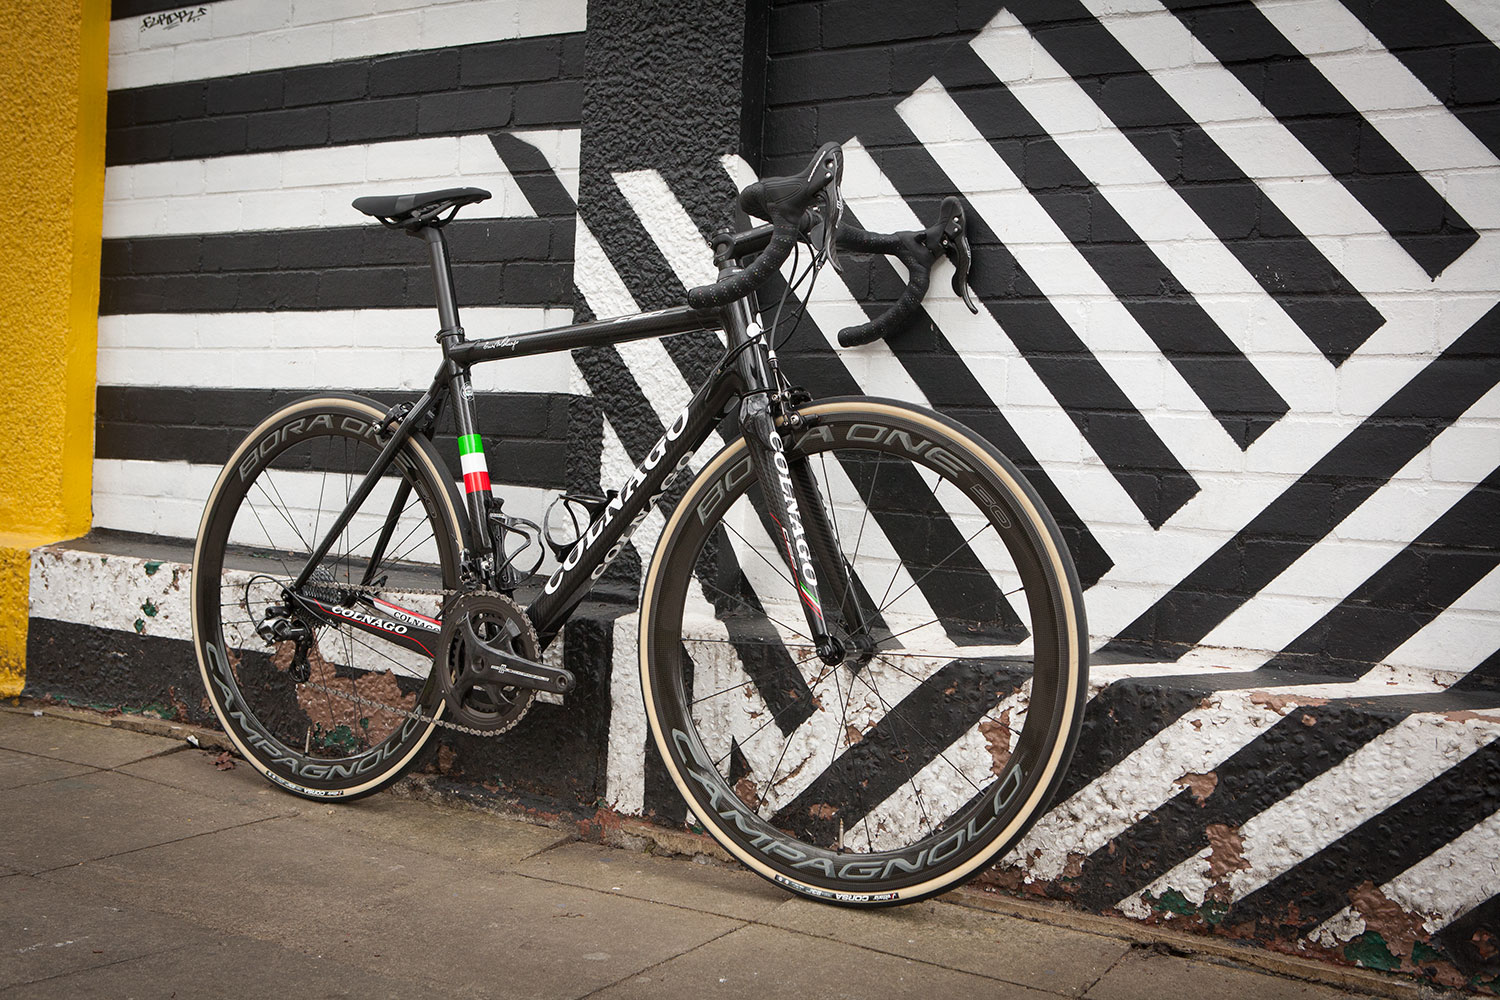 Colnago C60 bike in RSCG colours custom built at Super Domestique with Campagnolo Chorus groupset and Bora One 50 Dark Label wheelset, Vittoria Corsa G+ tyres and 3t Steal finishing kit.